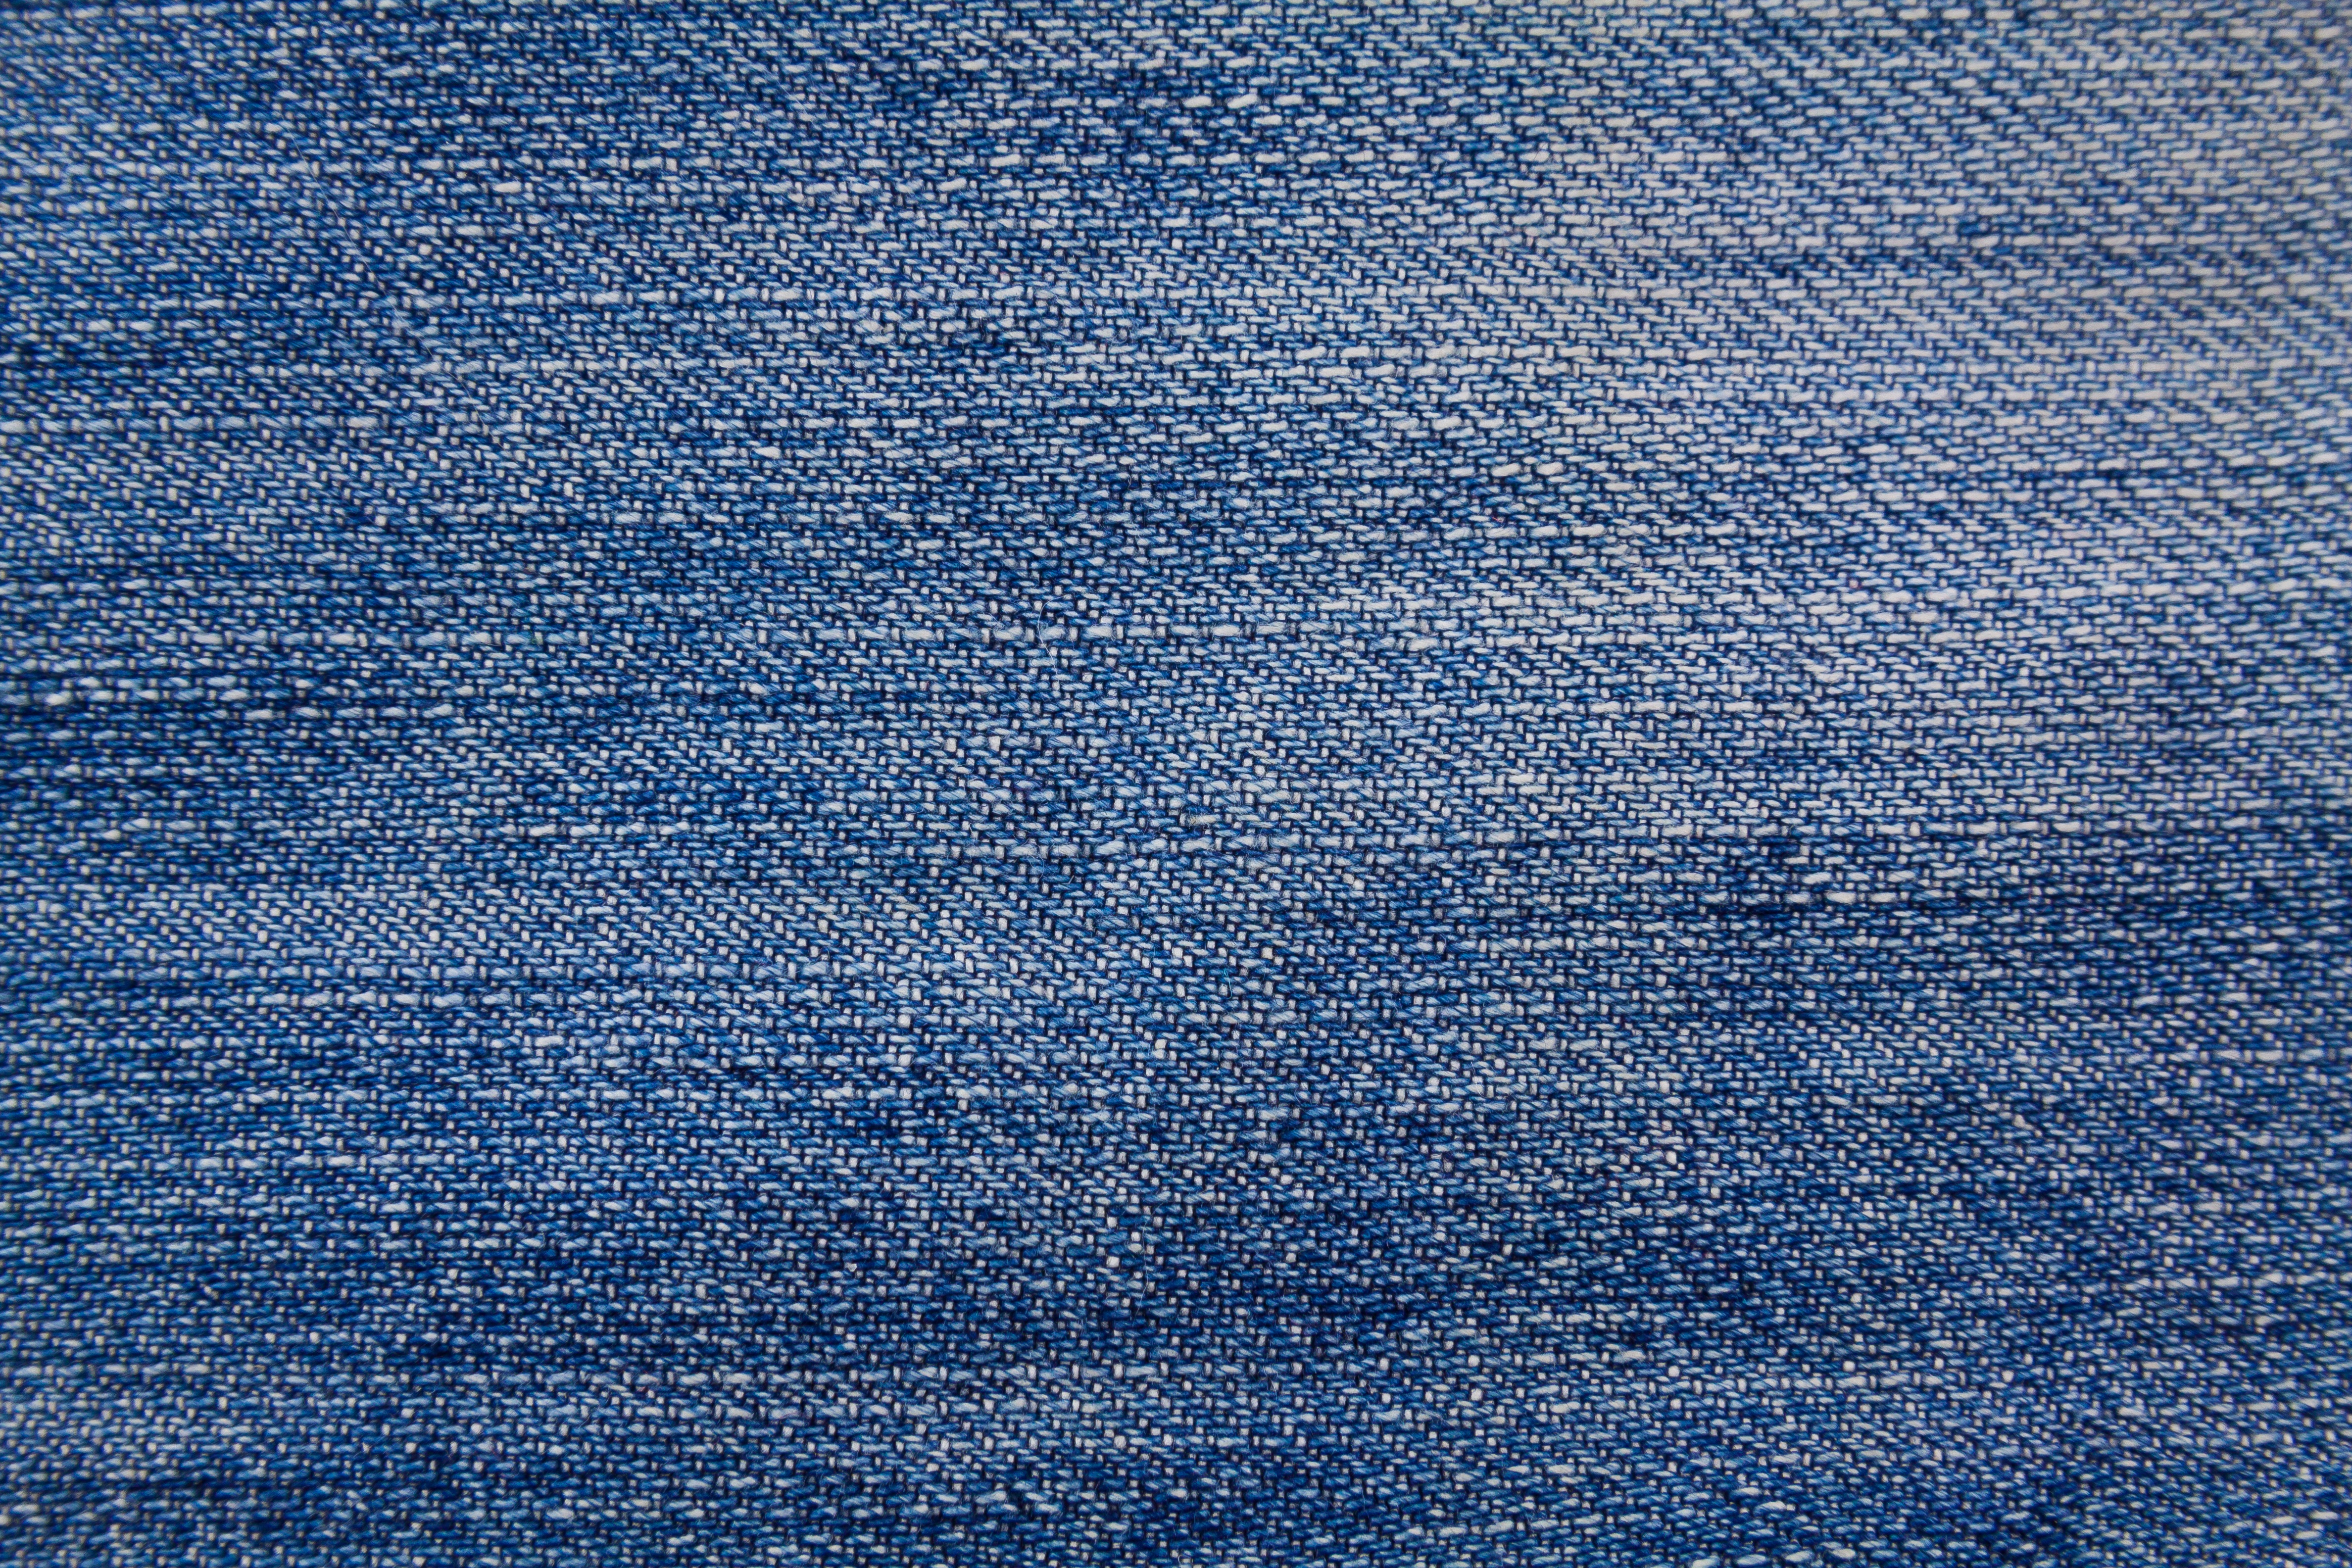 Wallpaper With Denim Fabric Texture